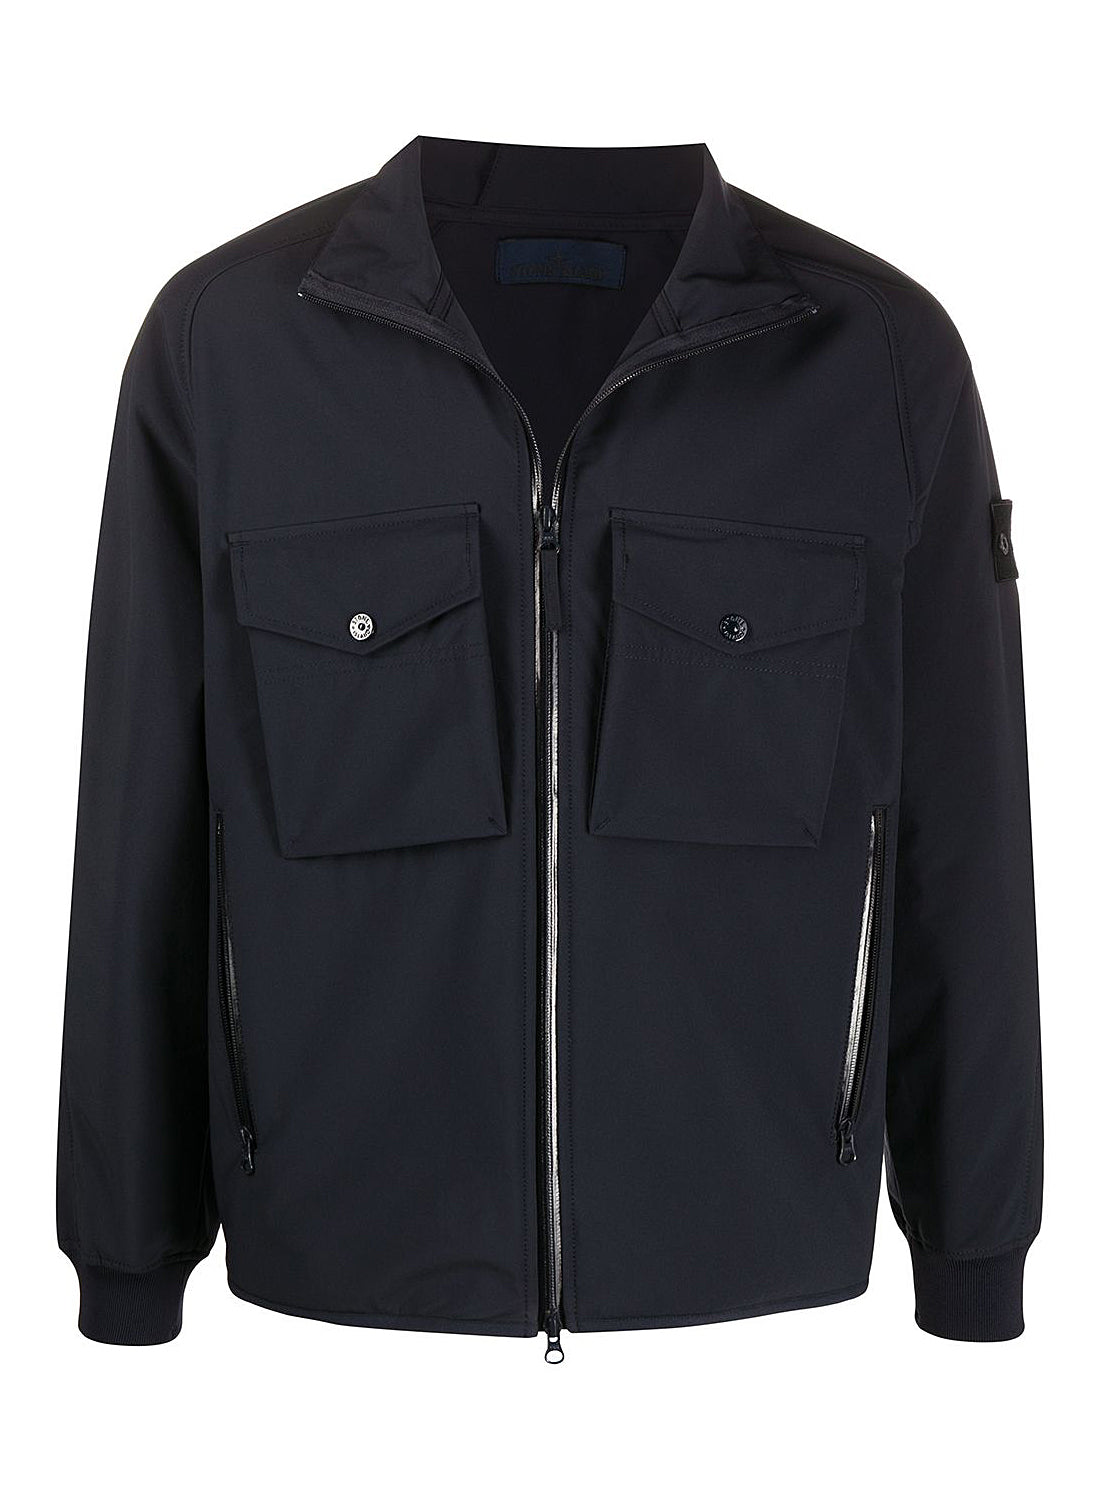 Poliestere Stretch 5L Ghost Piece Jacket - Navy